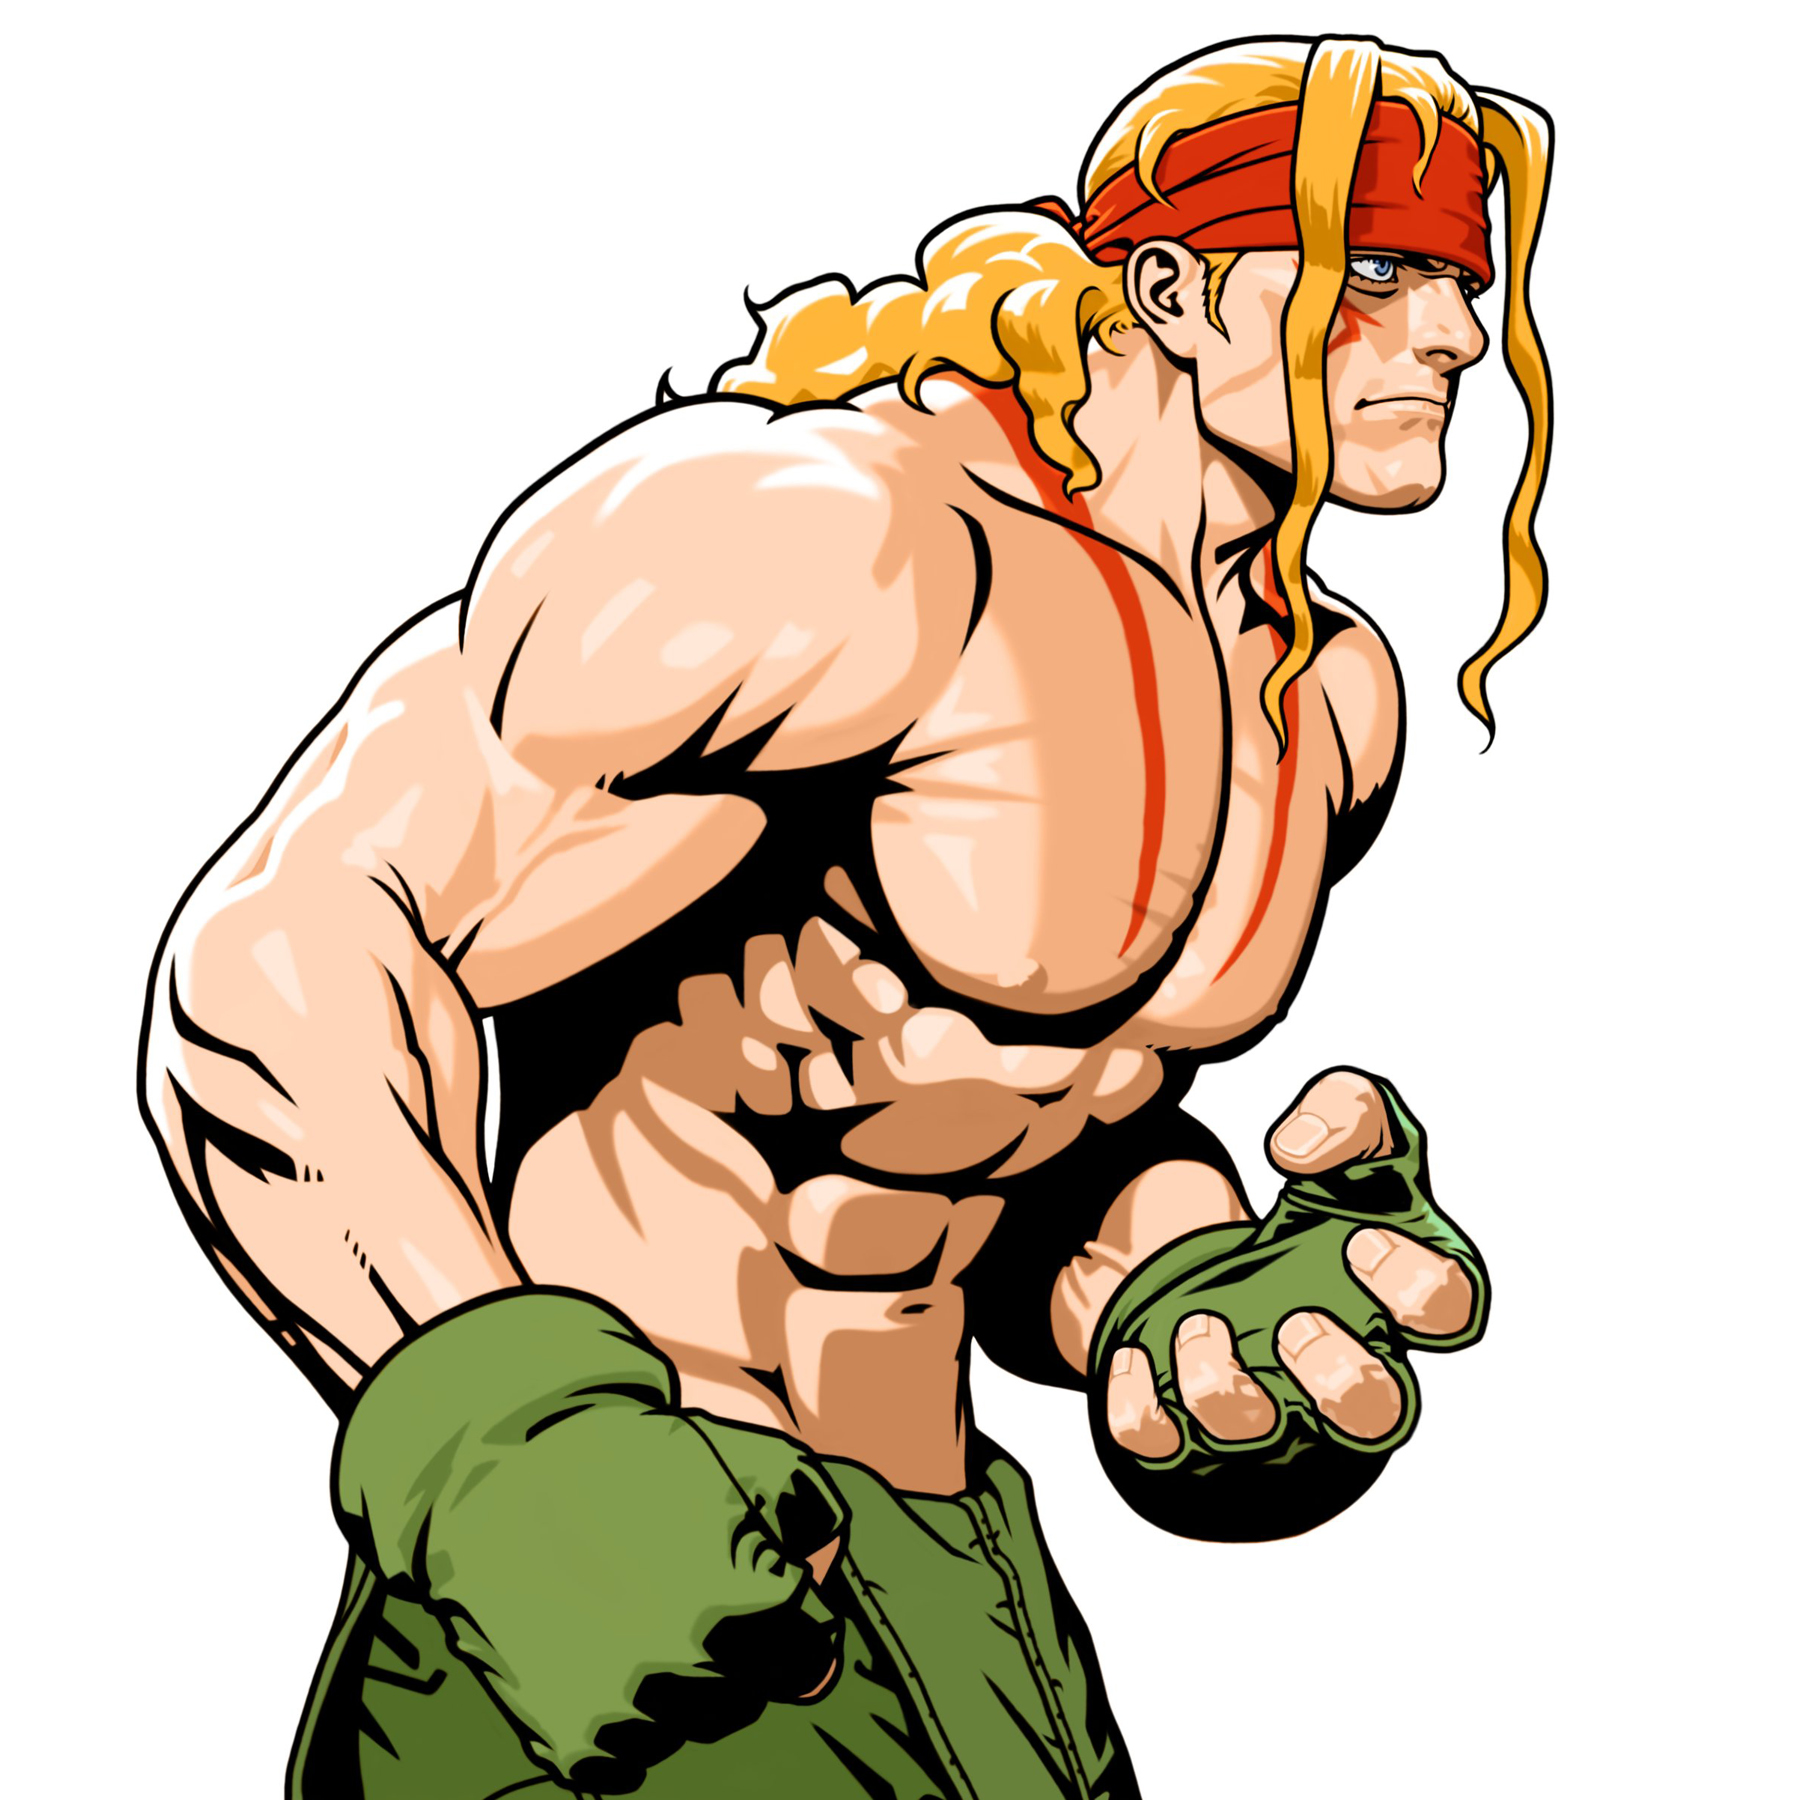 Street fighter 5 clipart.